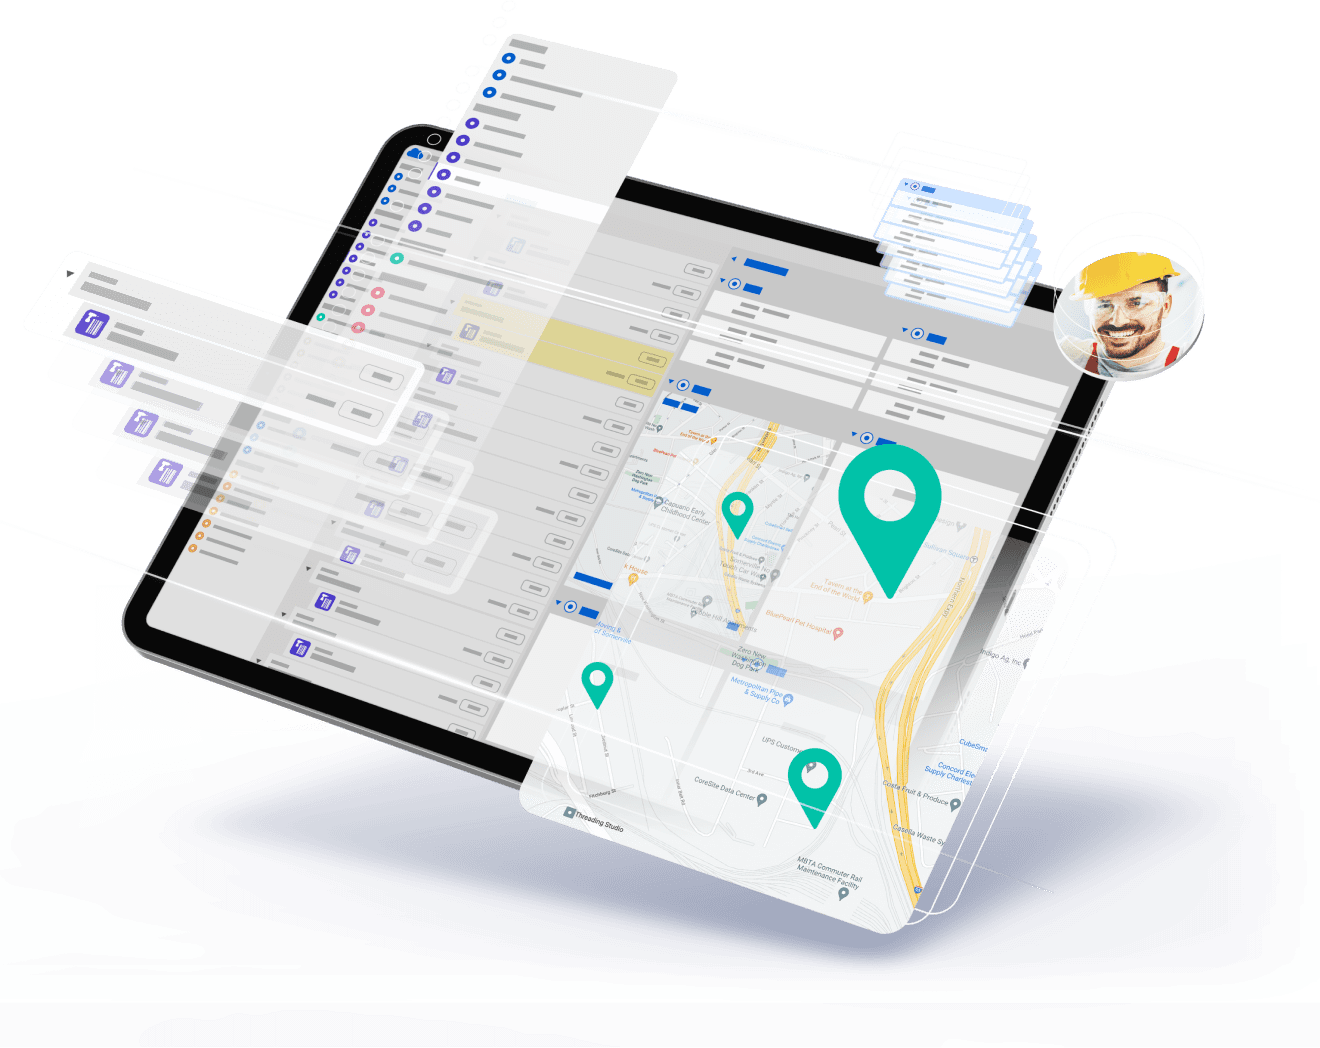 World-class mobility for your teams combined with powerful management and scheduling tools